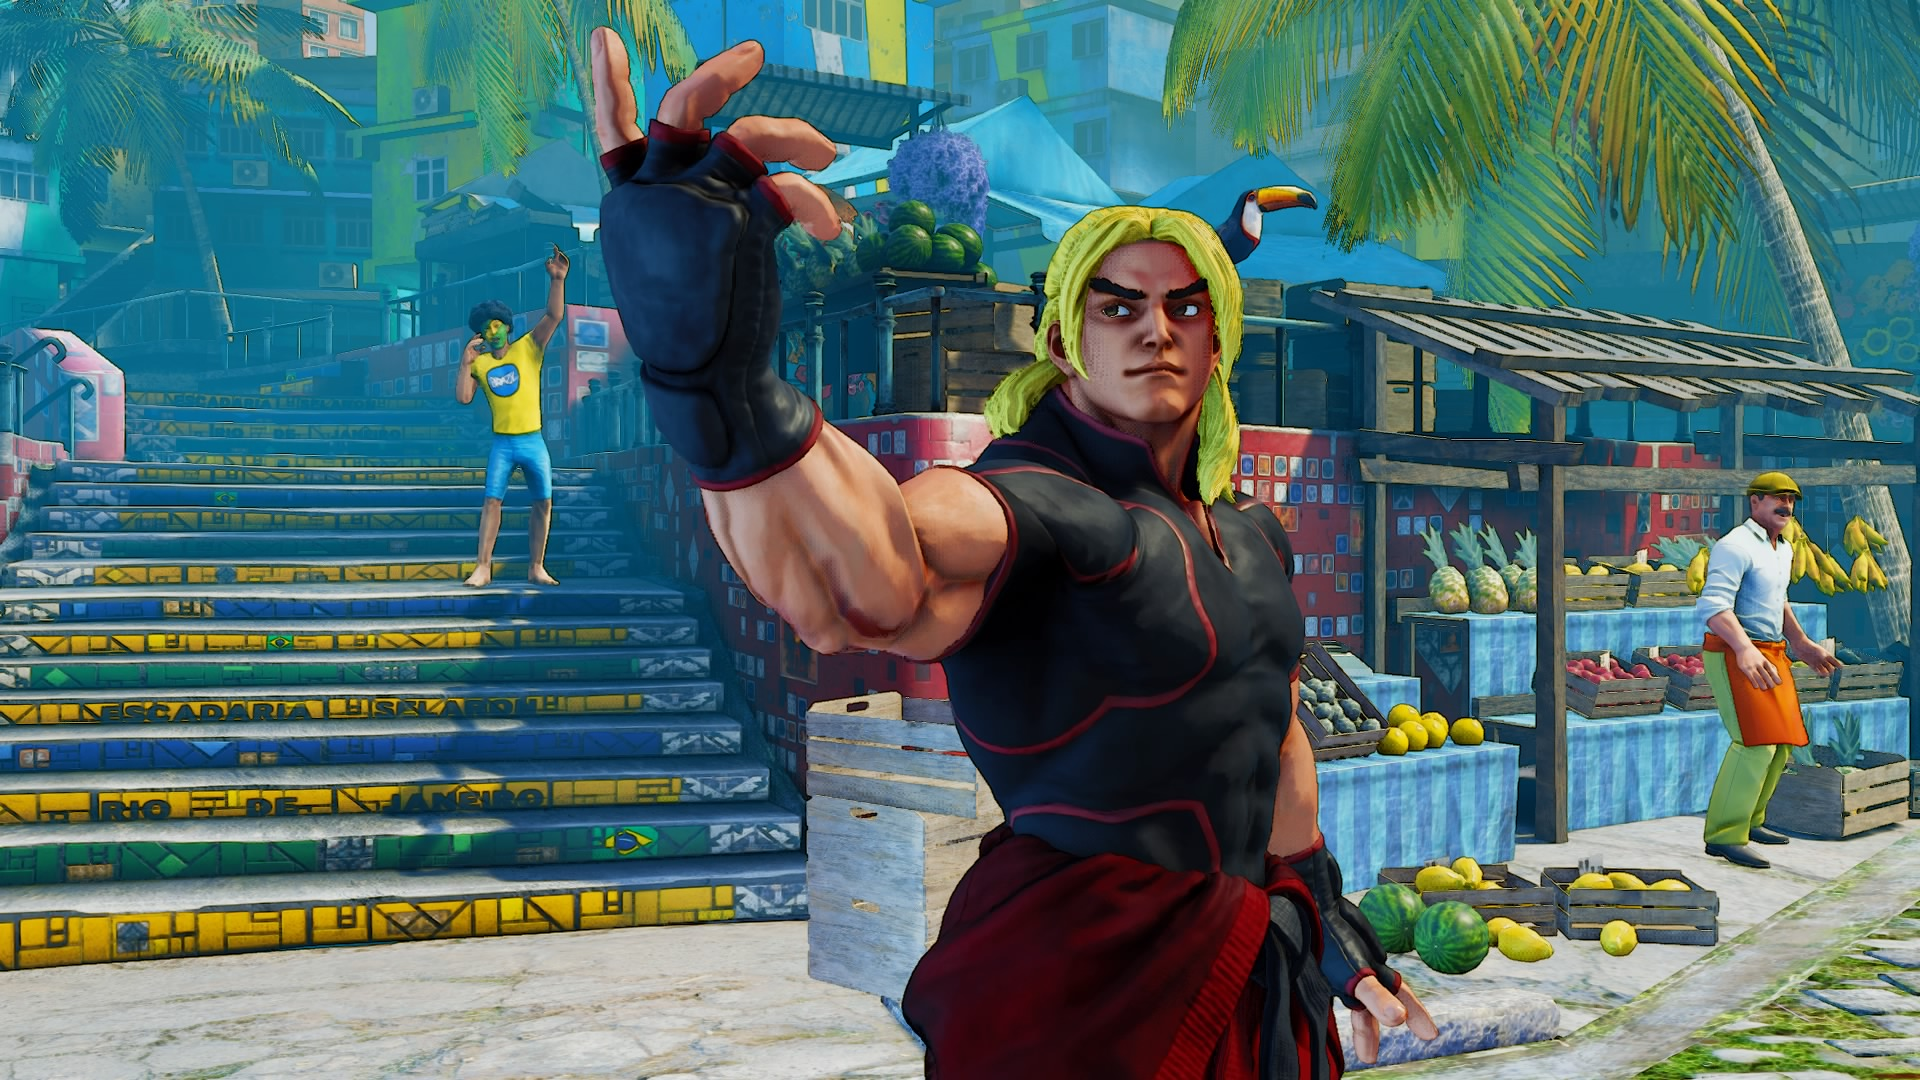 First Impressions: Street Fighter V's Story Mode is Pretty Poor, But the Gameplay is Spot On